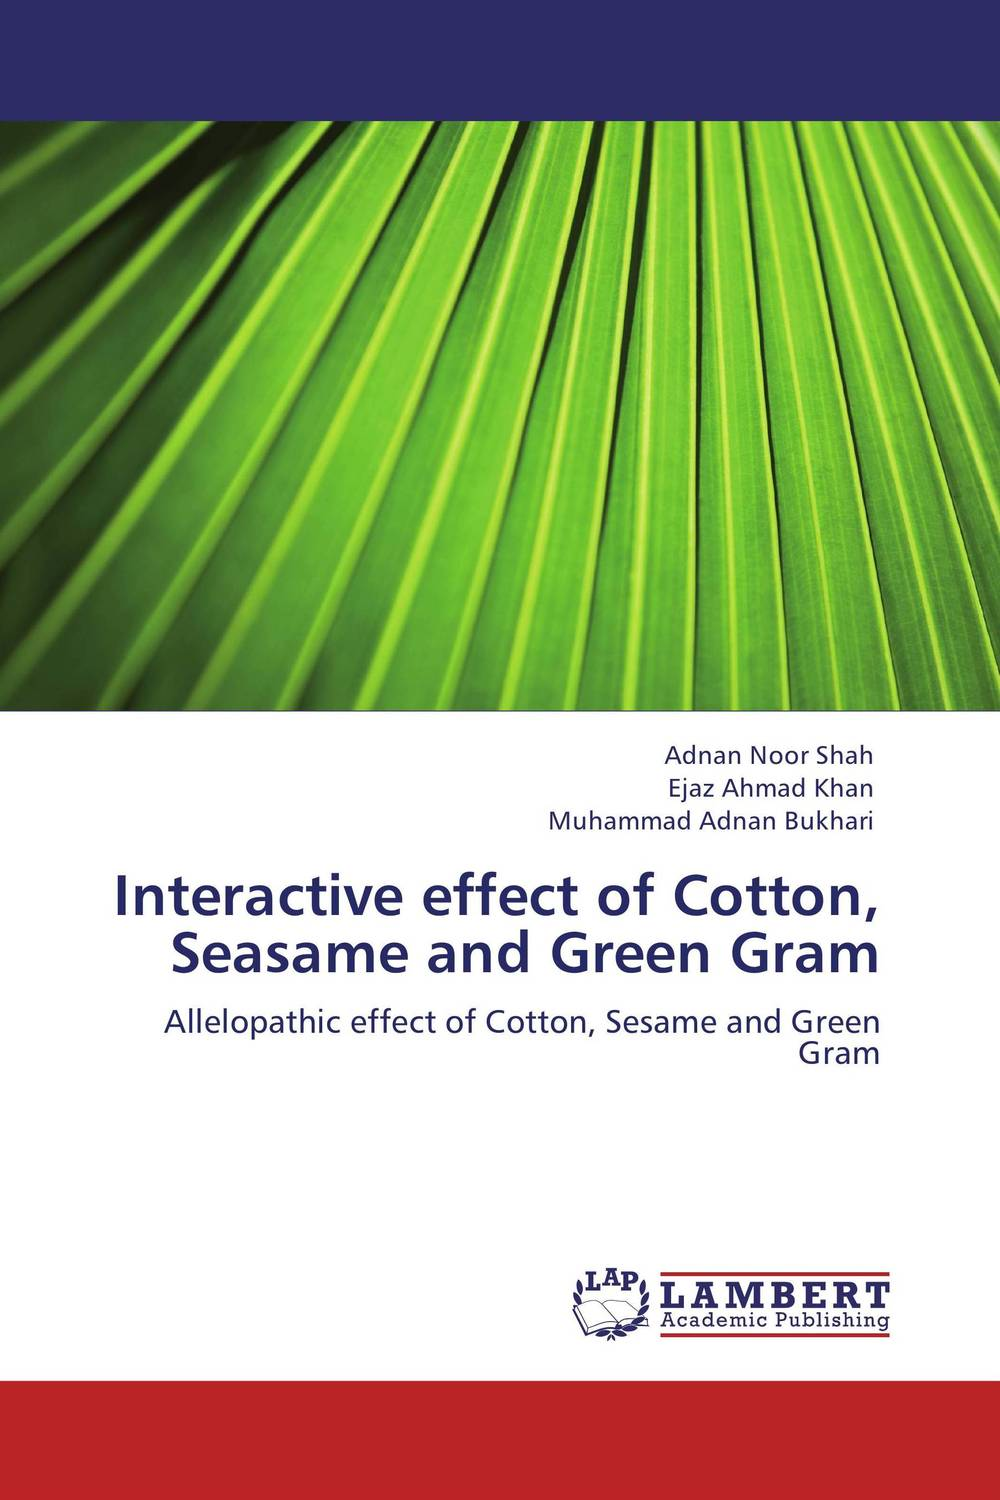 цена на Interactive effect of Cotton, Seasame and Green Gram